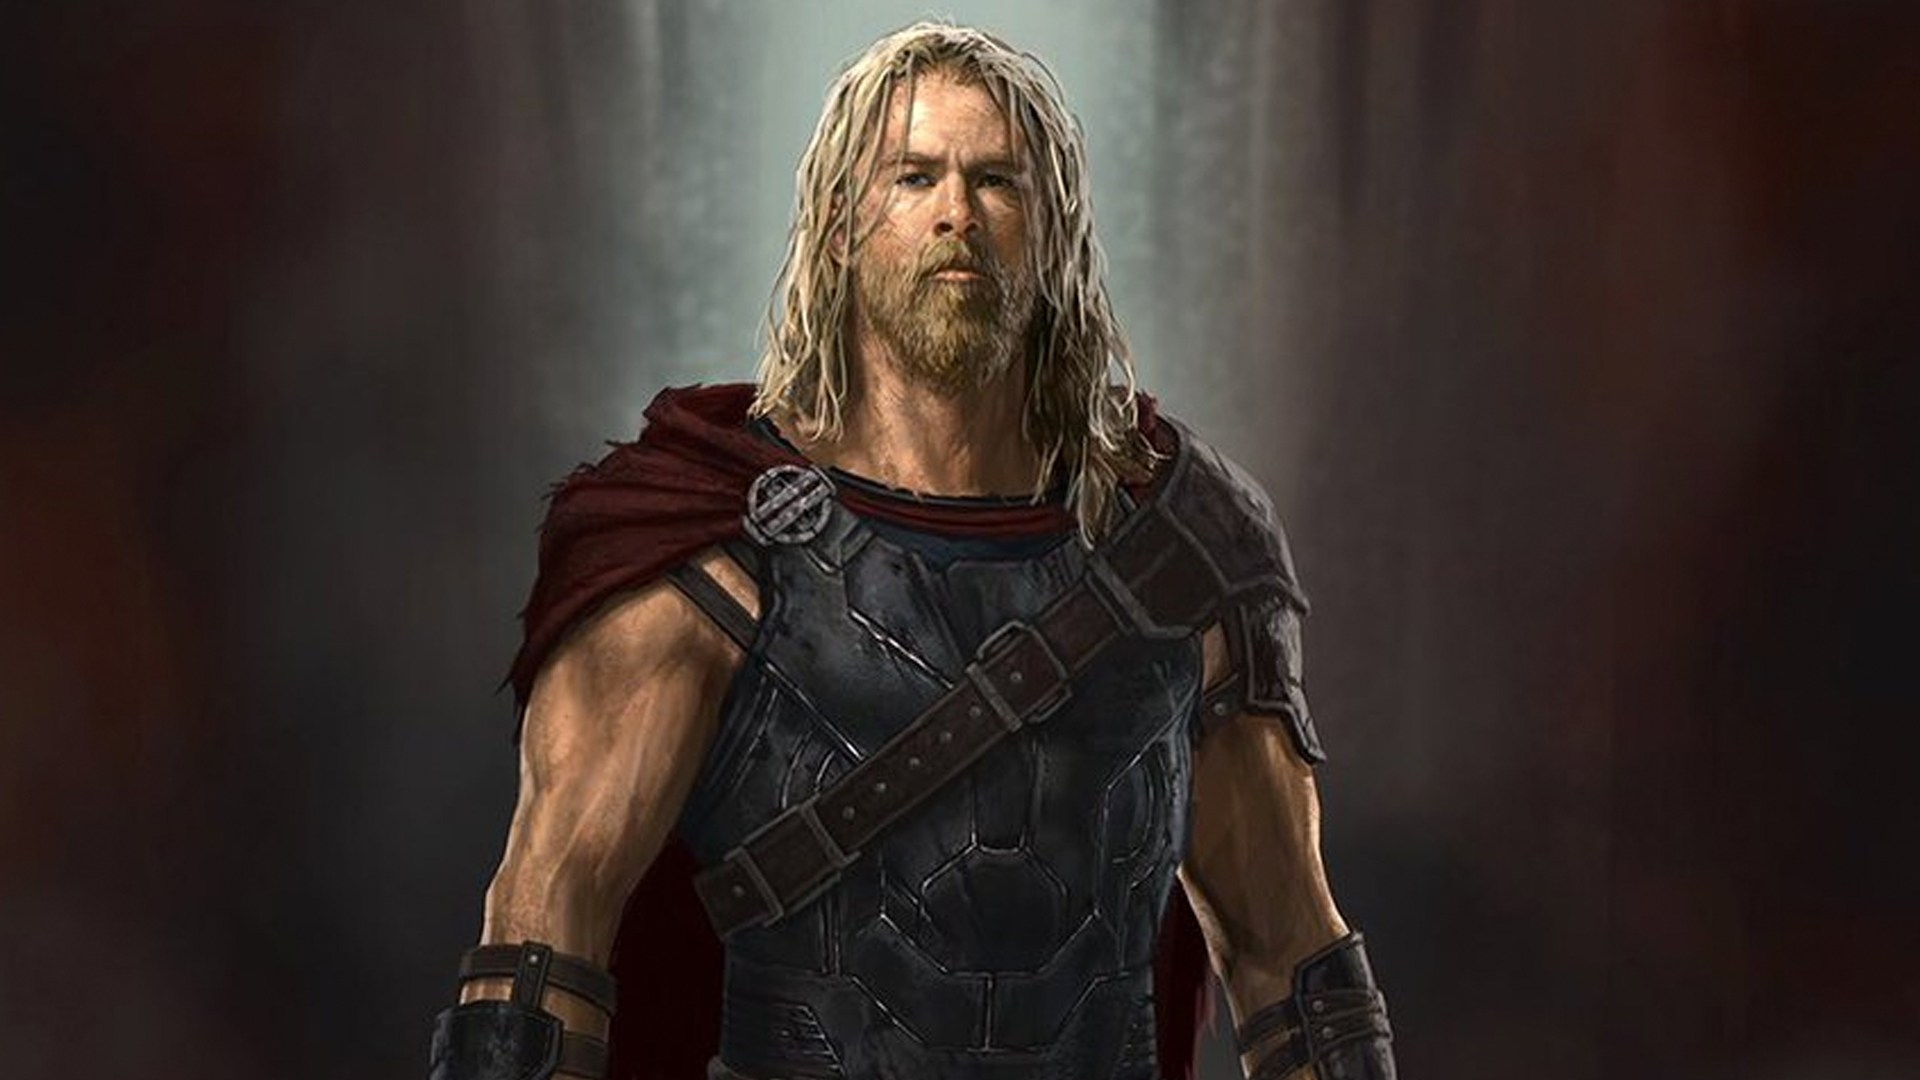 marvel artist andy park reveals awesome early thor: ragnarok concept